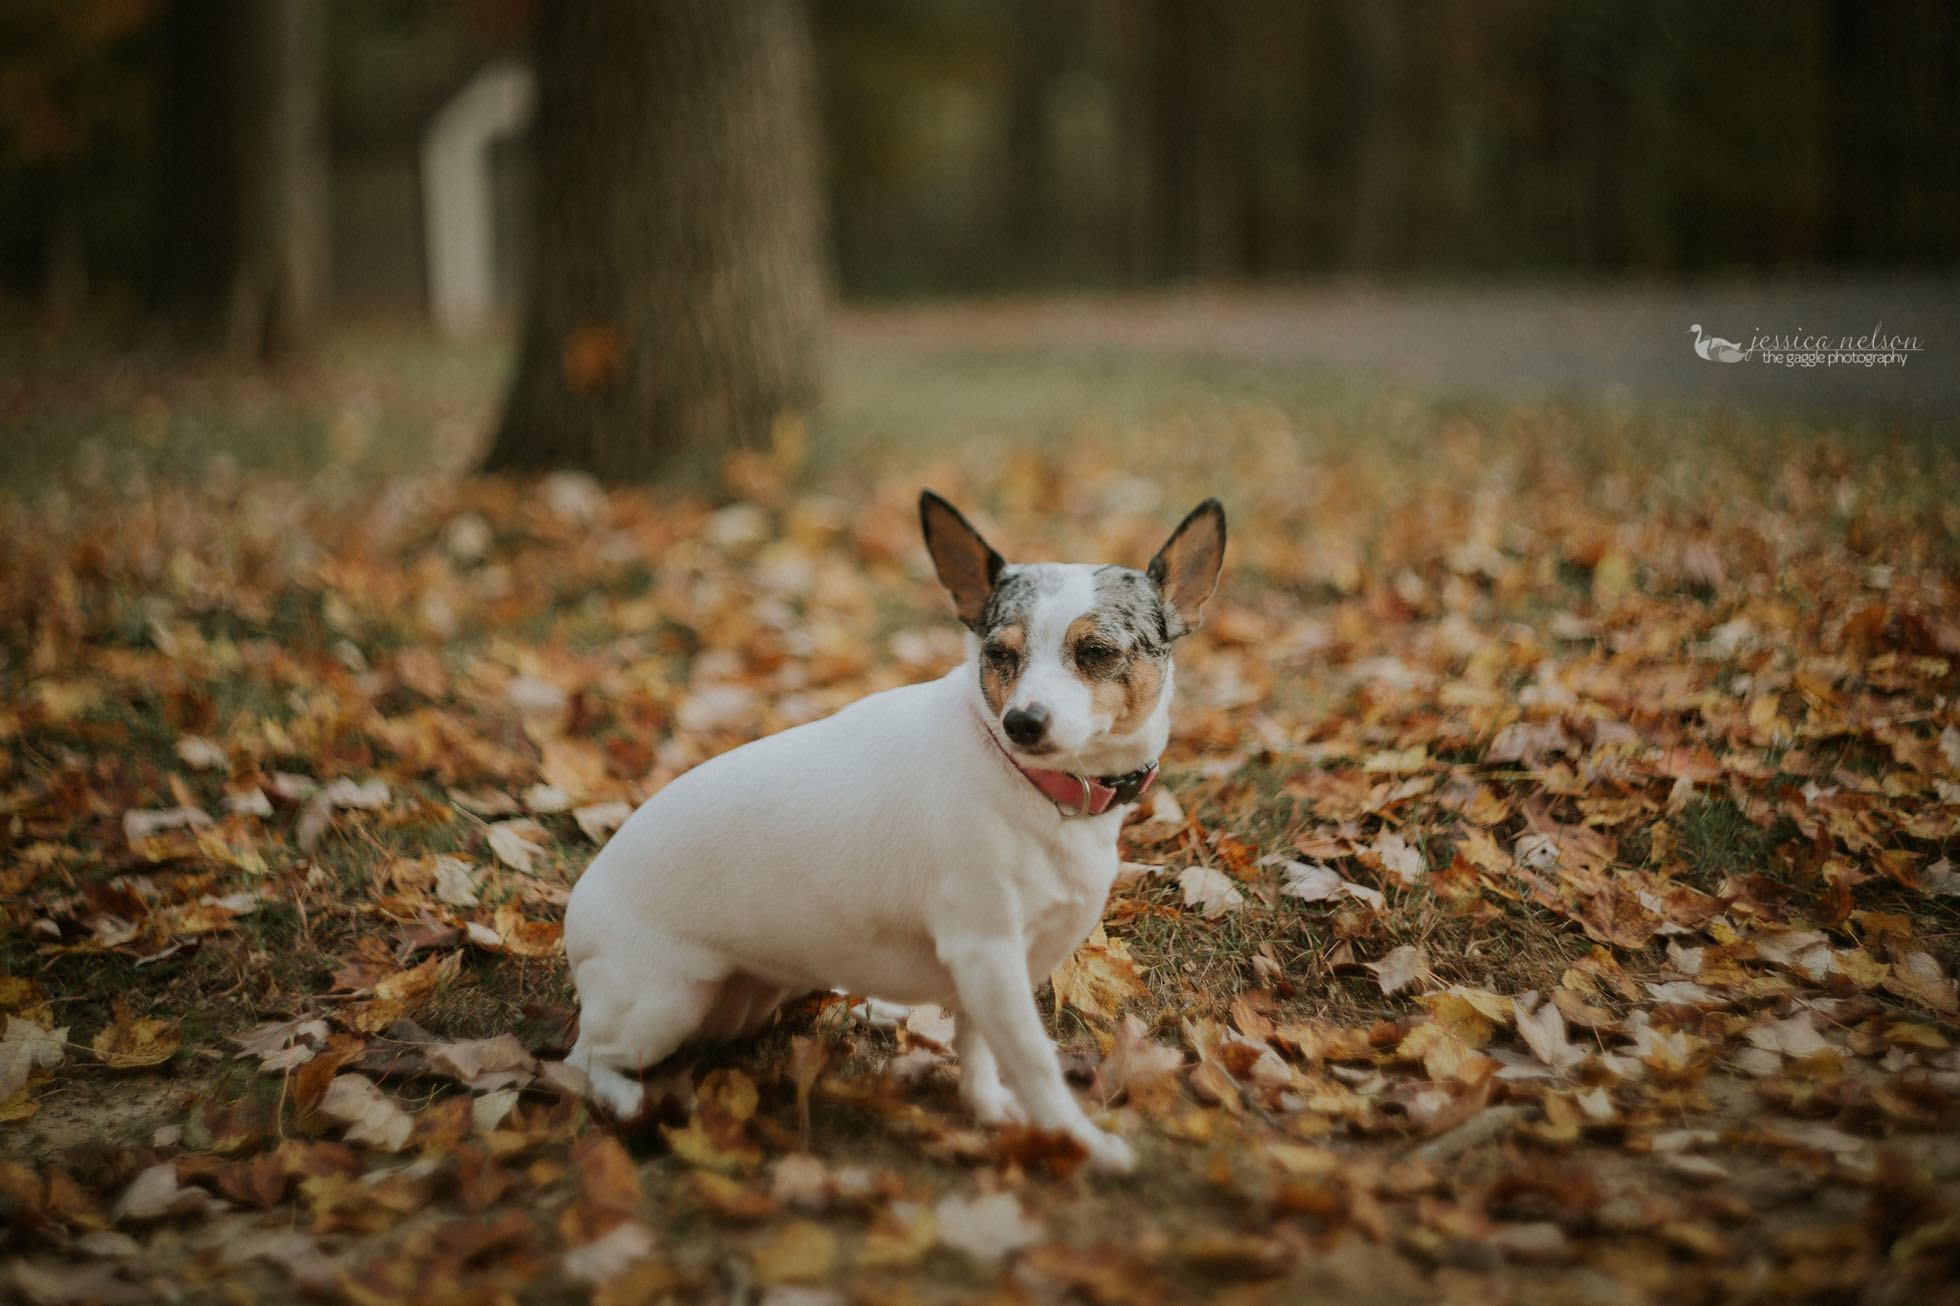 freelensed picture of a dog by Jessica Nelson